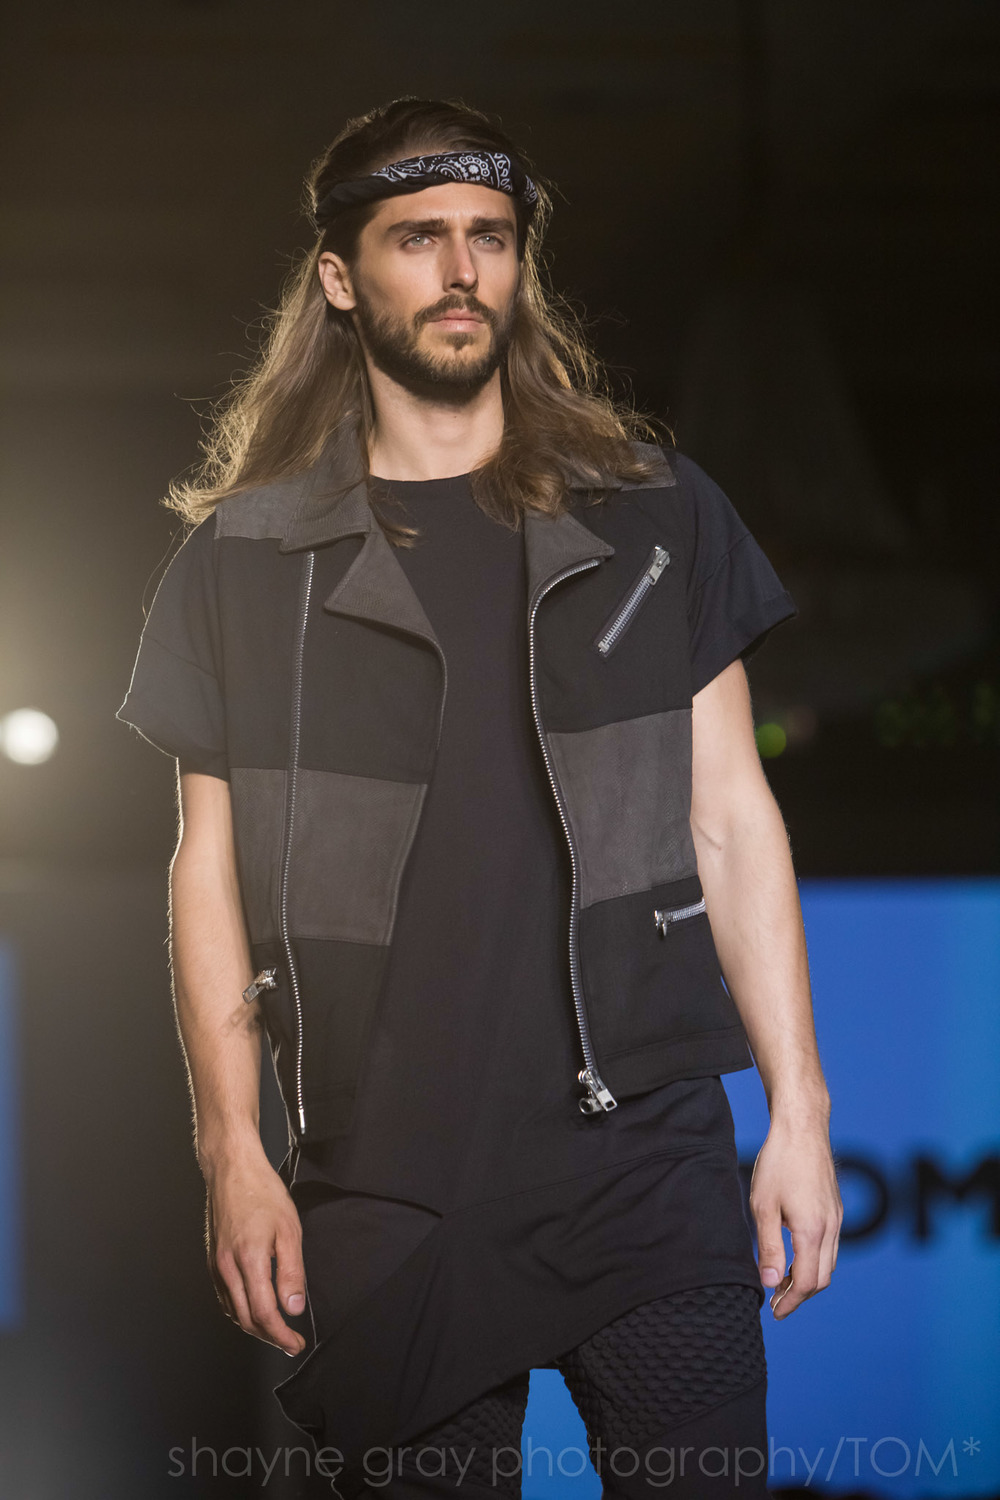 Shayne-Gray-Toronto-men's-fashion_week-TOM-sons-of-odin-8511.jpg